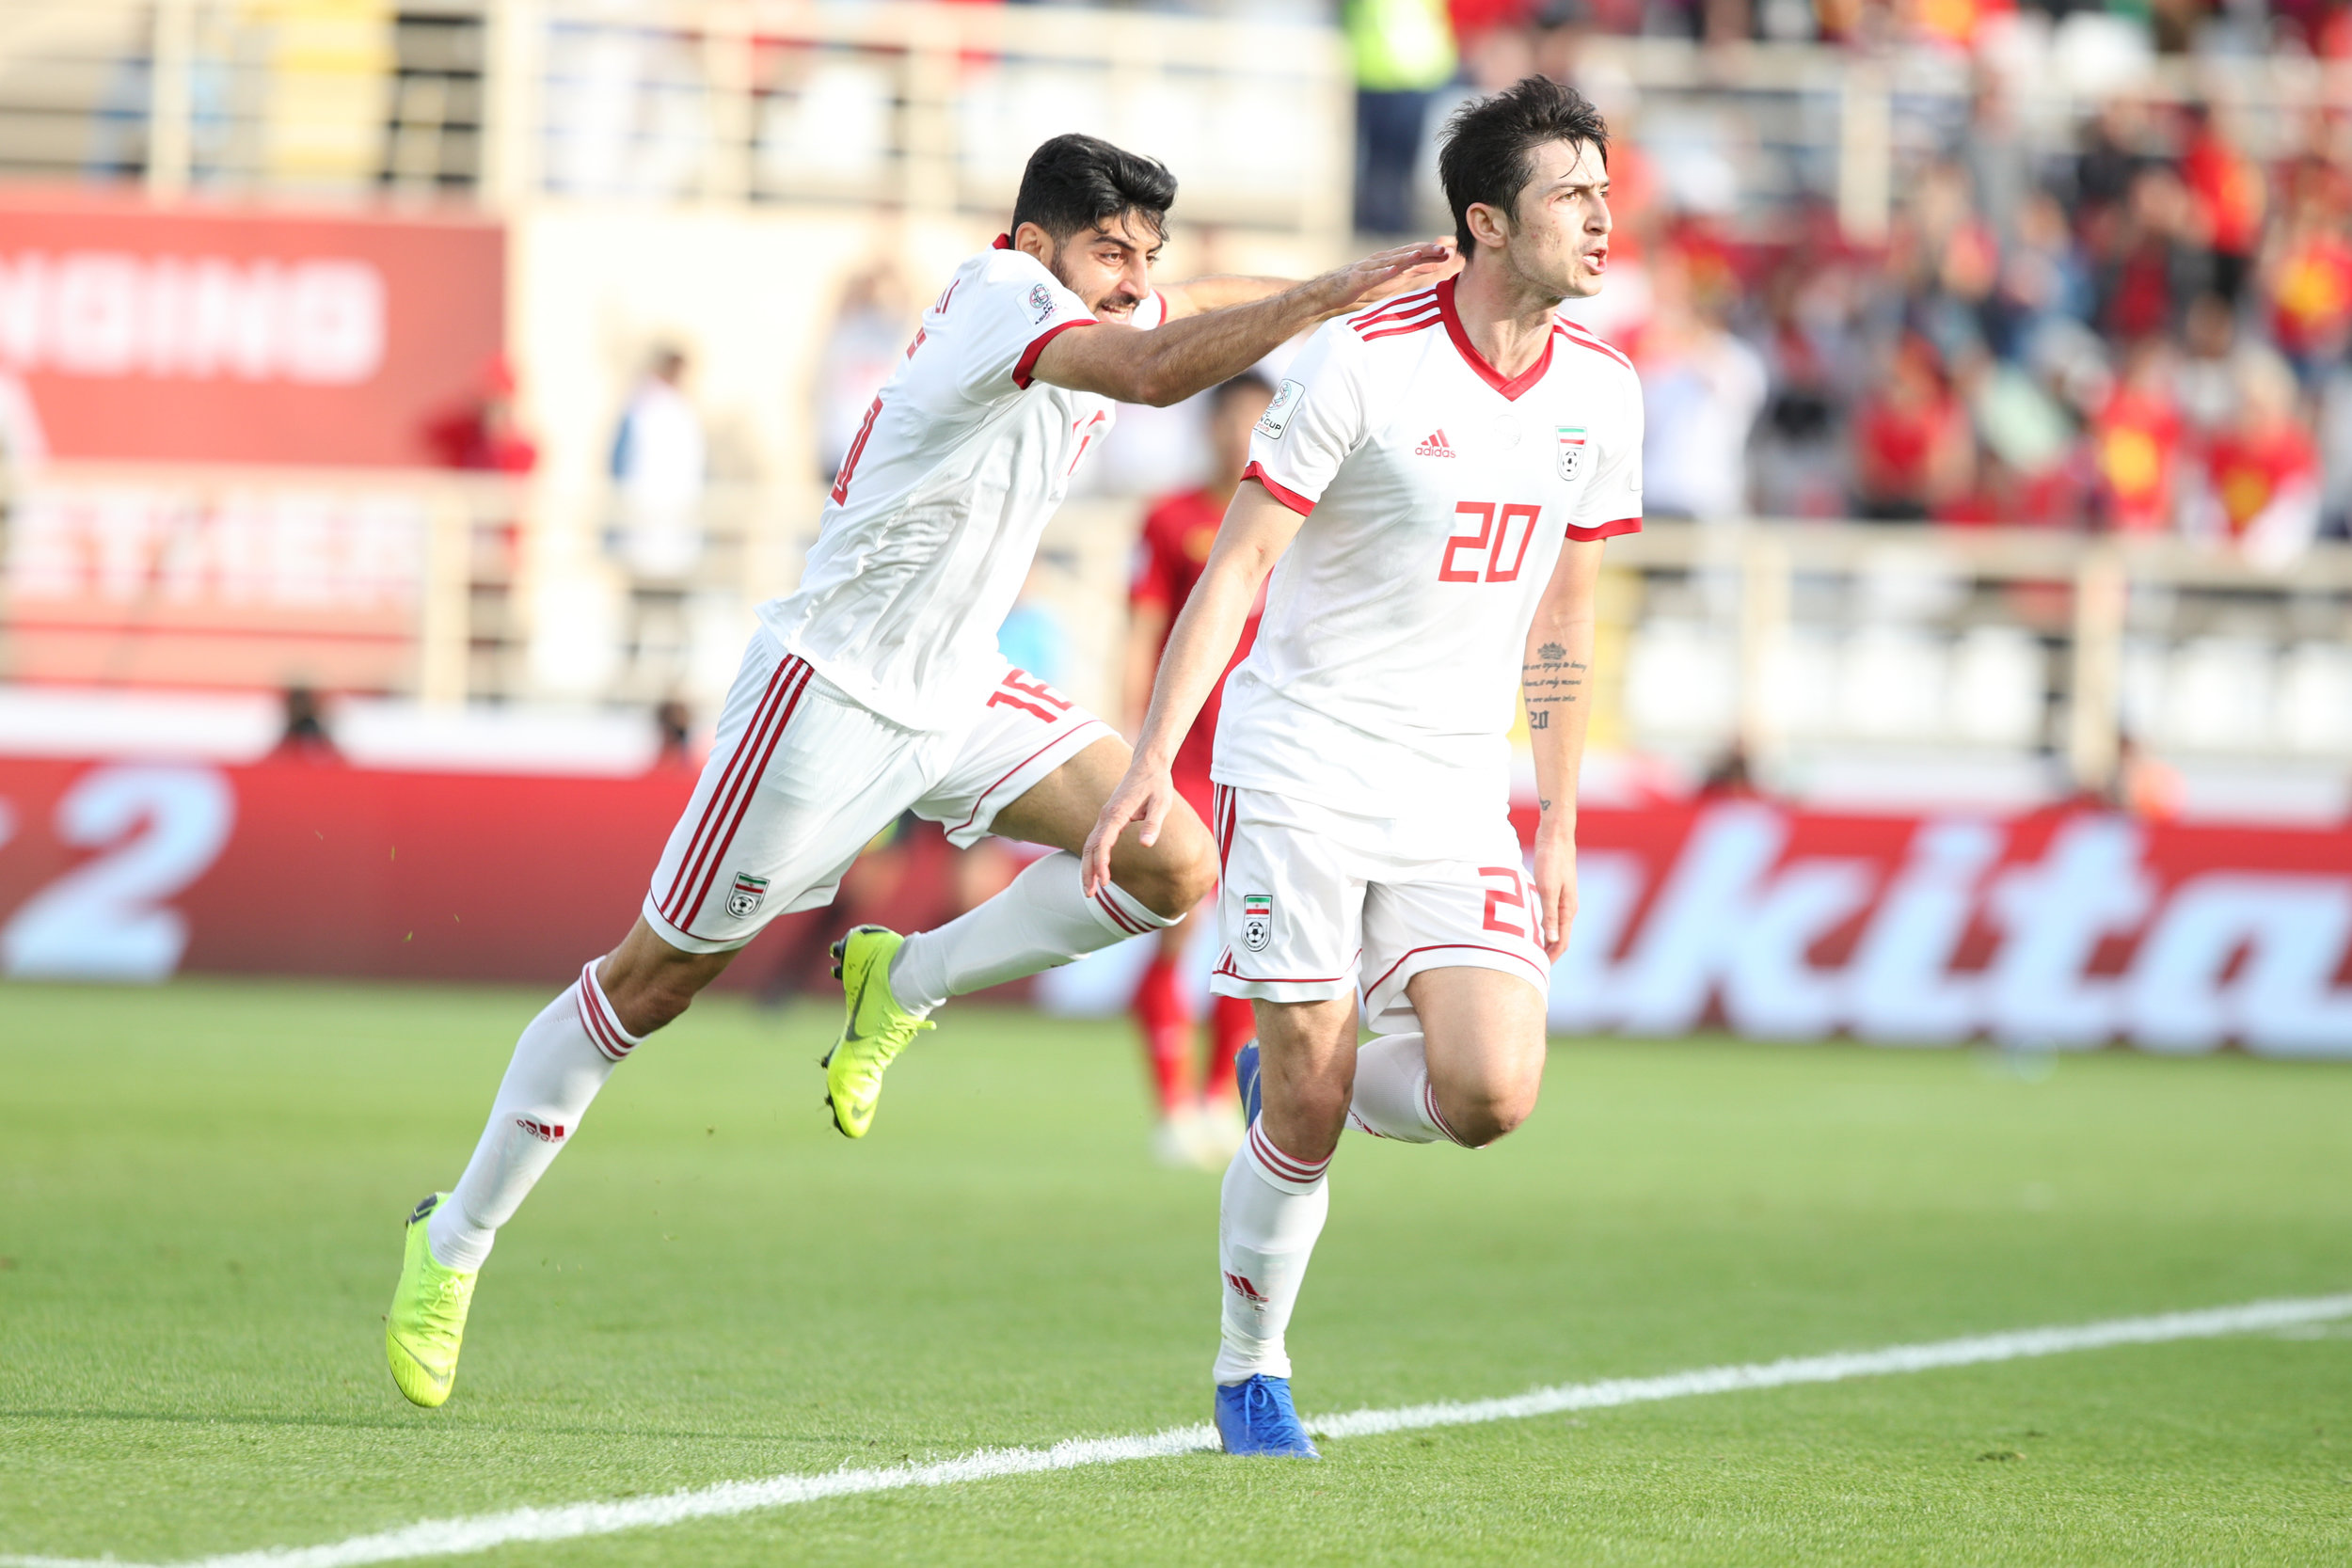 Sardar Azmoun, Iran's leading scorer wishes to defeat their fierce rivals from Iraq (Asian Football Confederation (AFC))